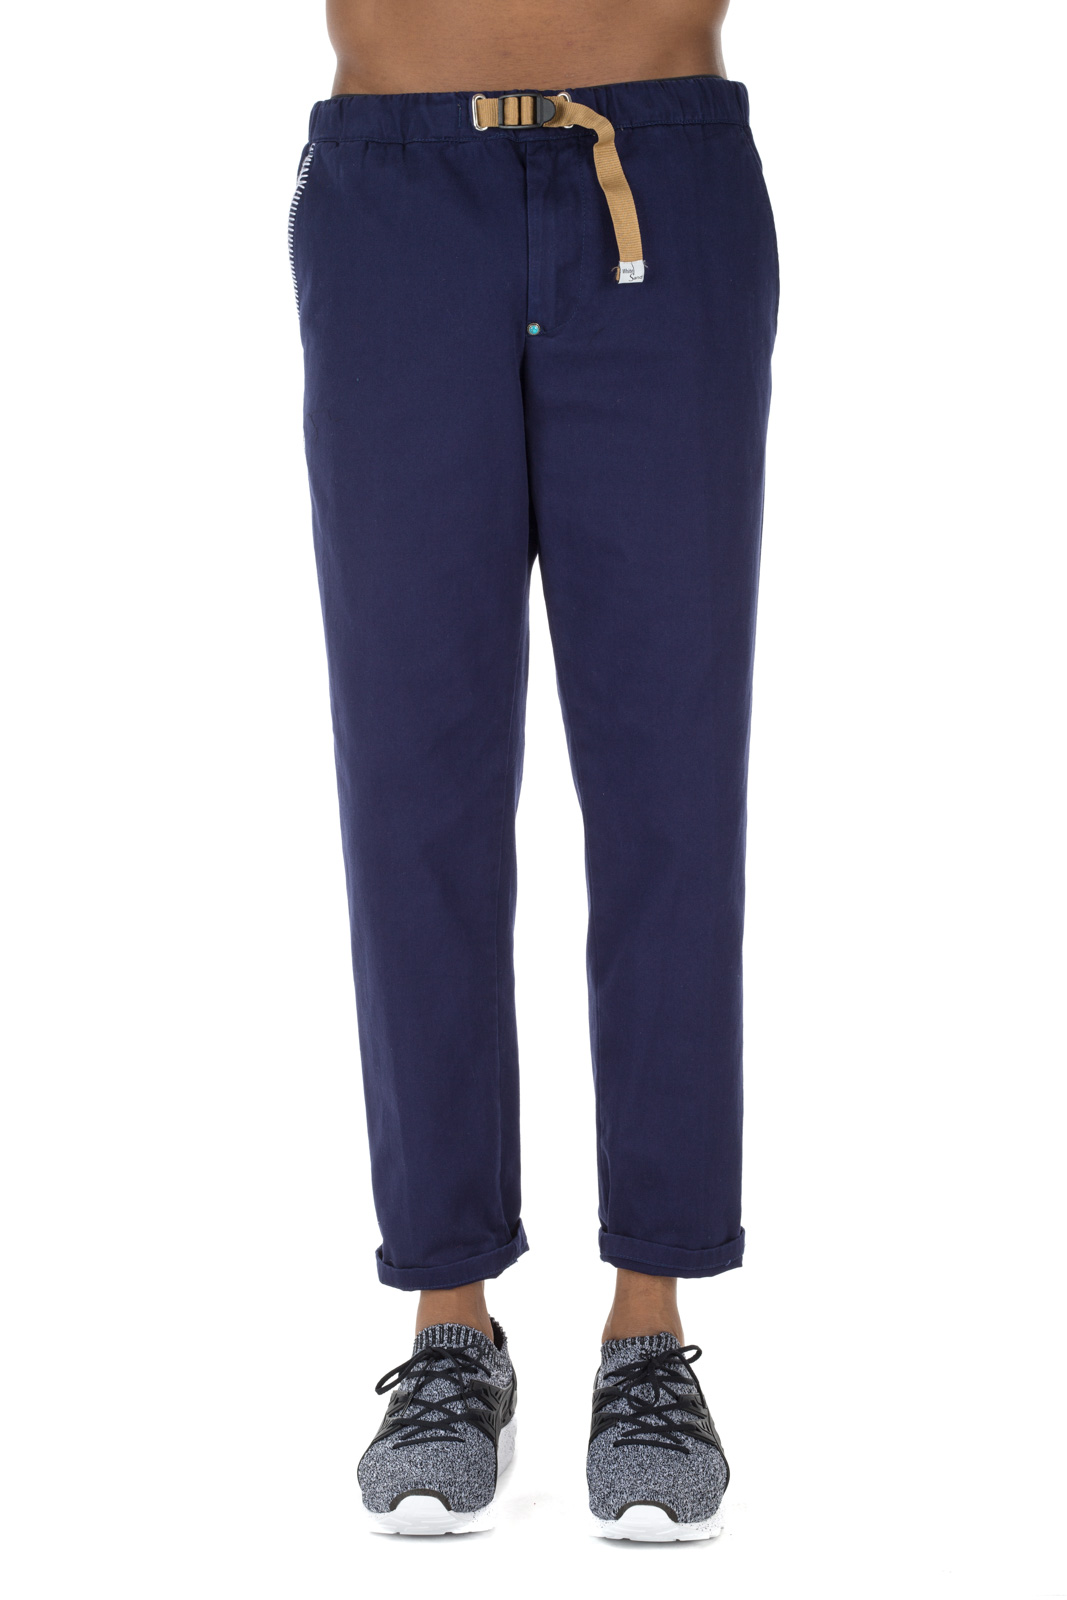 White Sand - Blue Chino Trousers